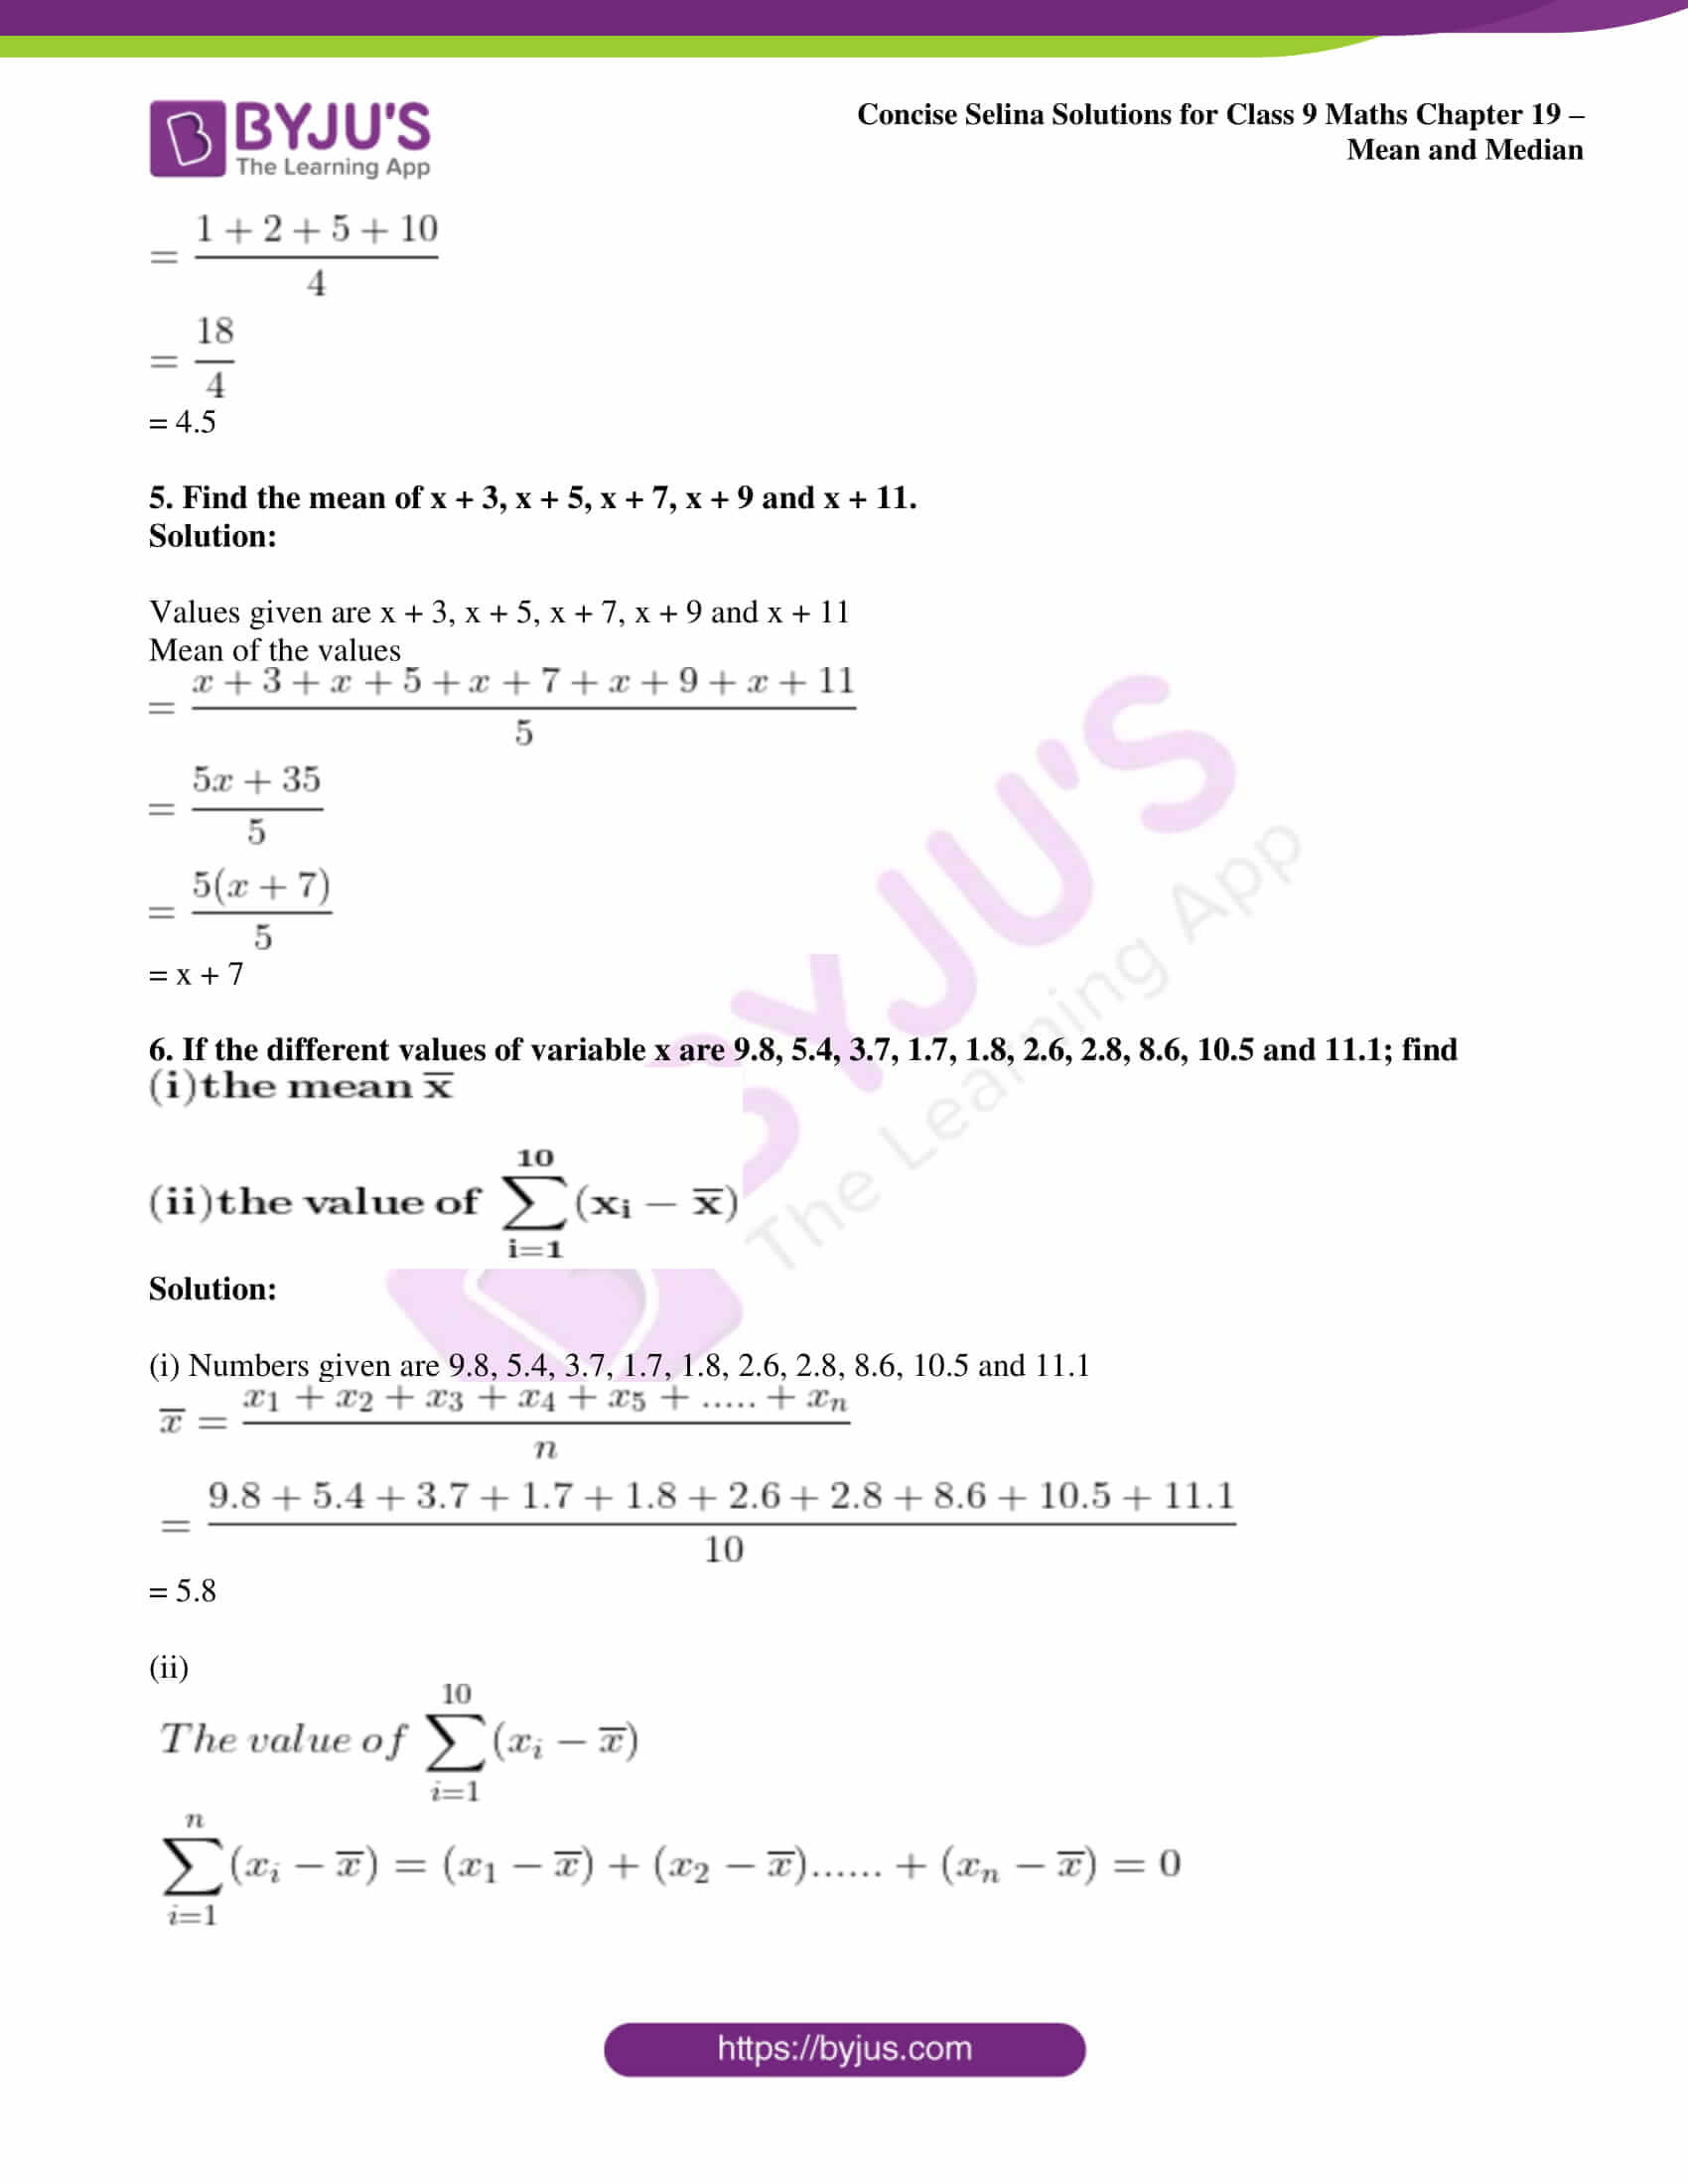 icse class 9 maths may10 selina solutions chapter 19 mean and median 02